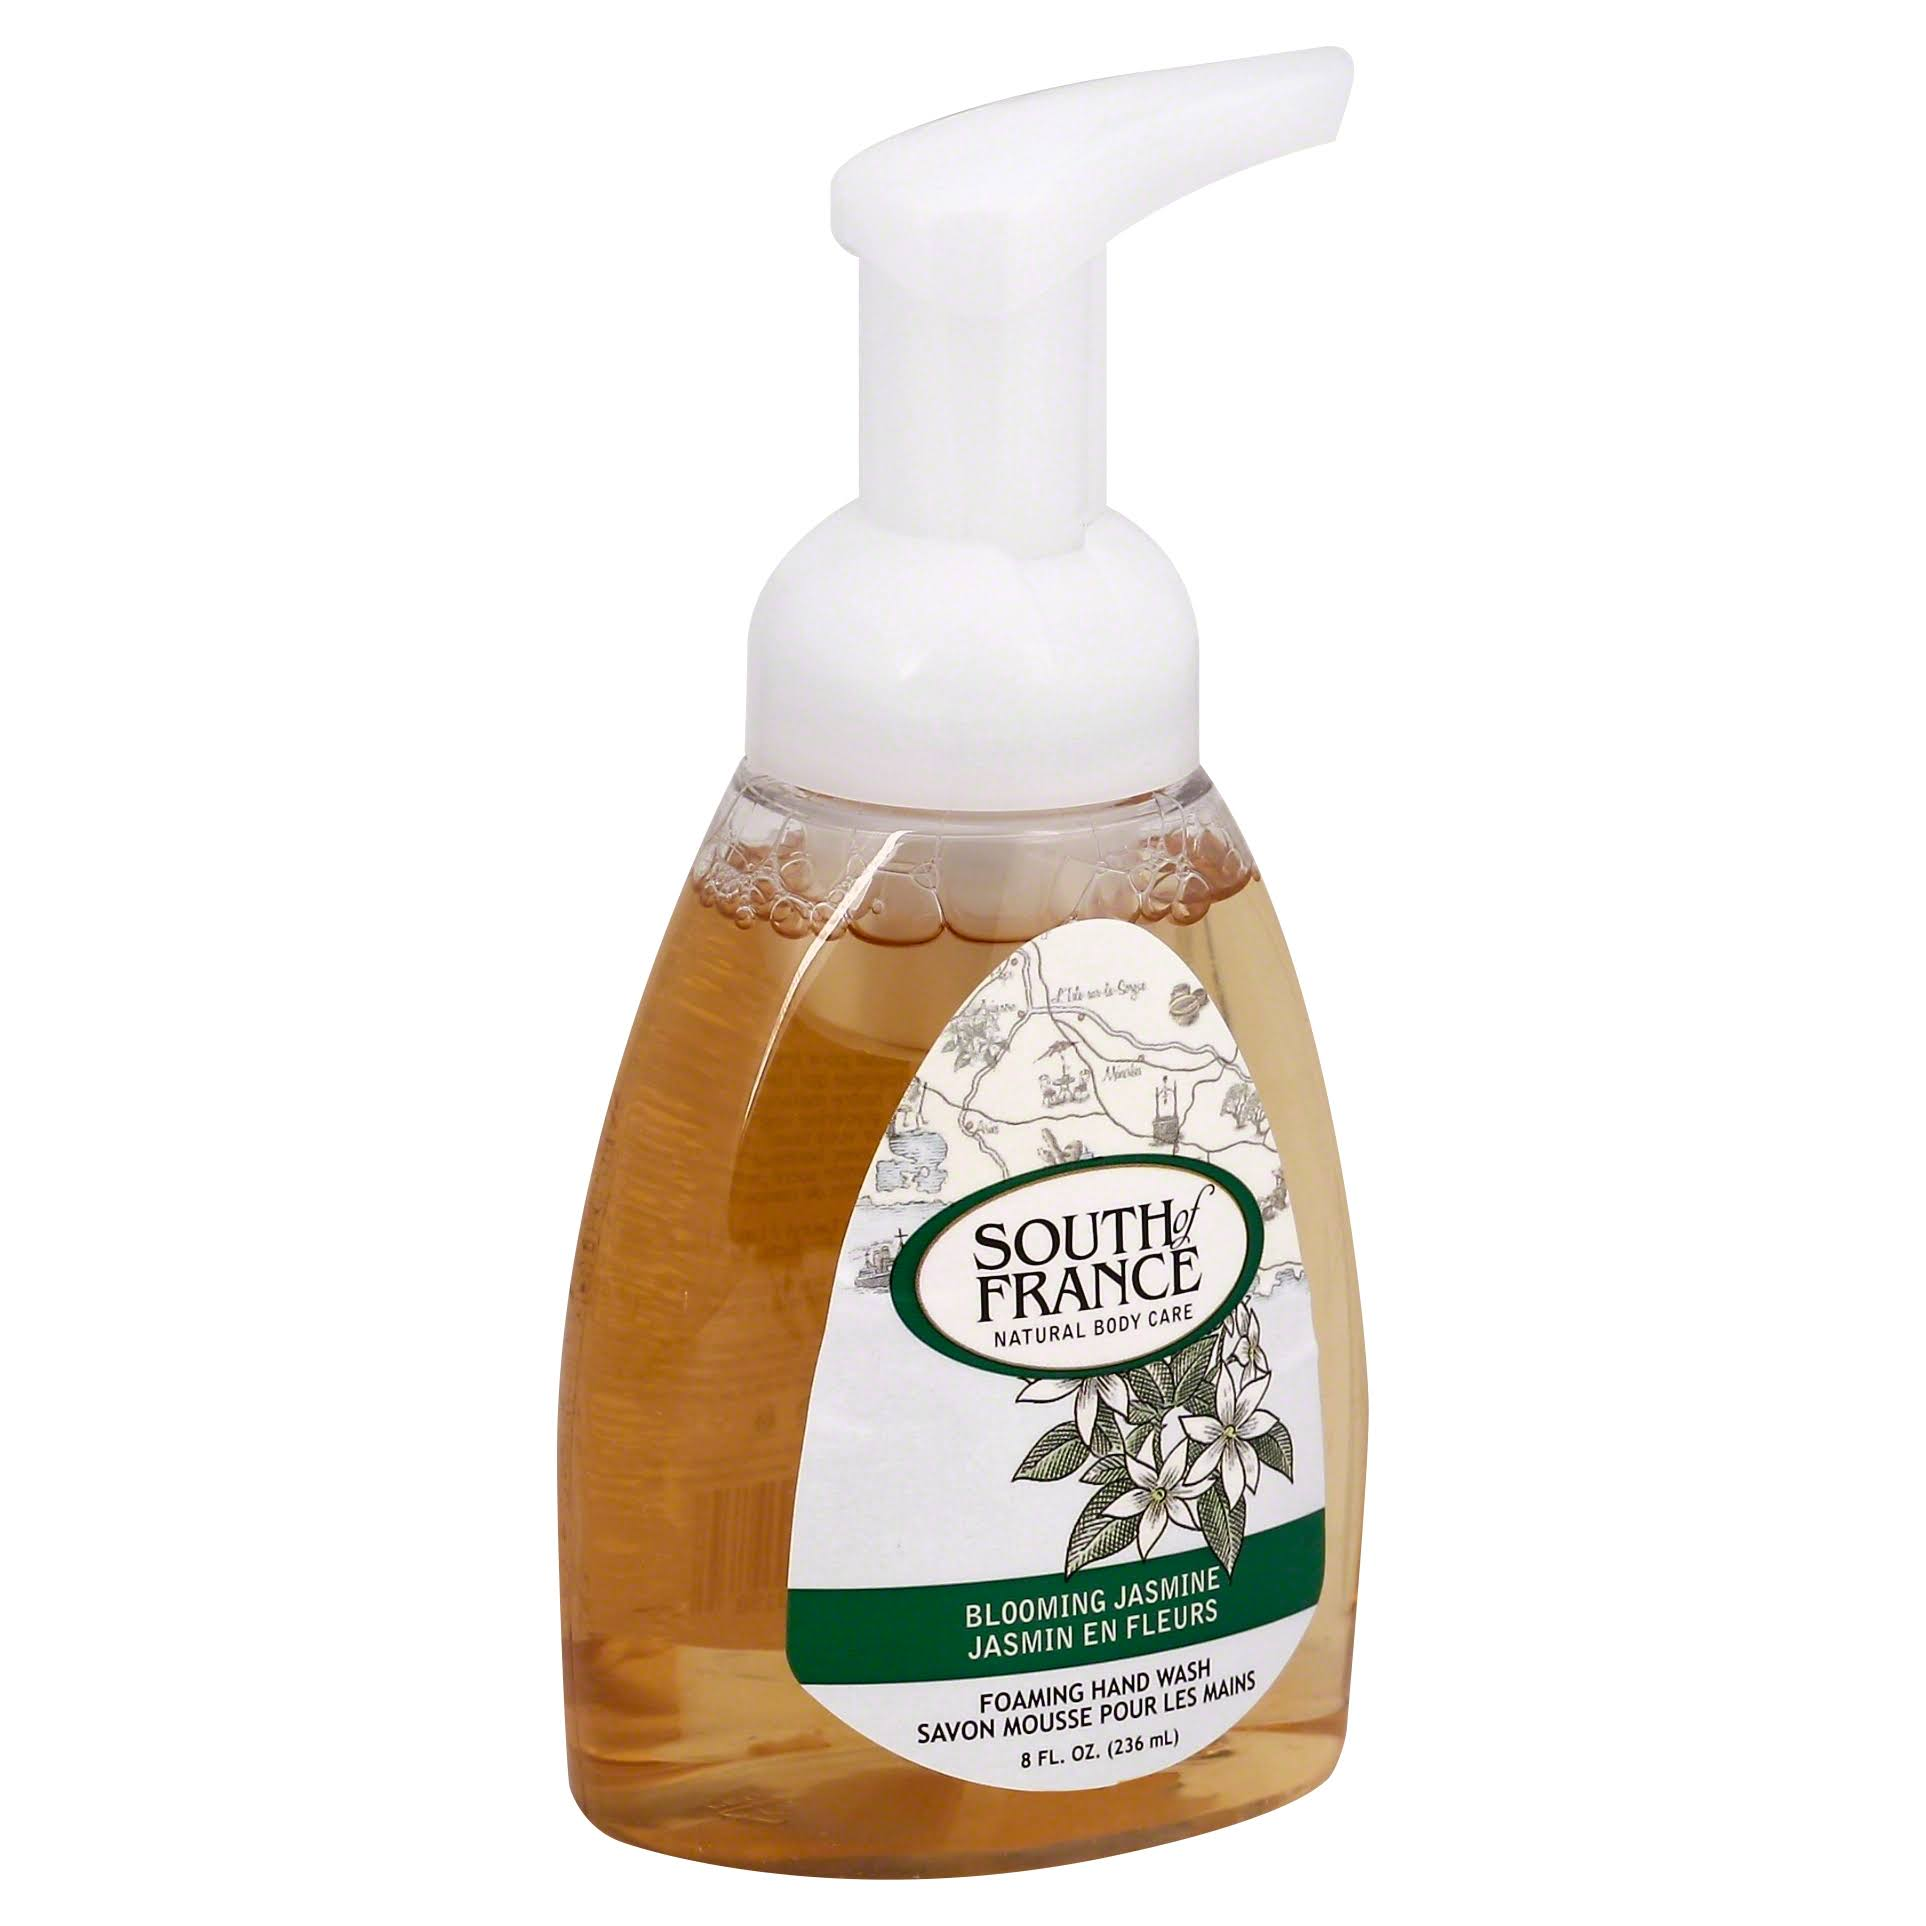 South of France Foaming Hand Wash - Blooming Jasmine, 236ml